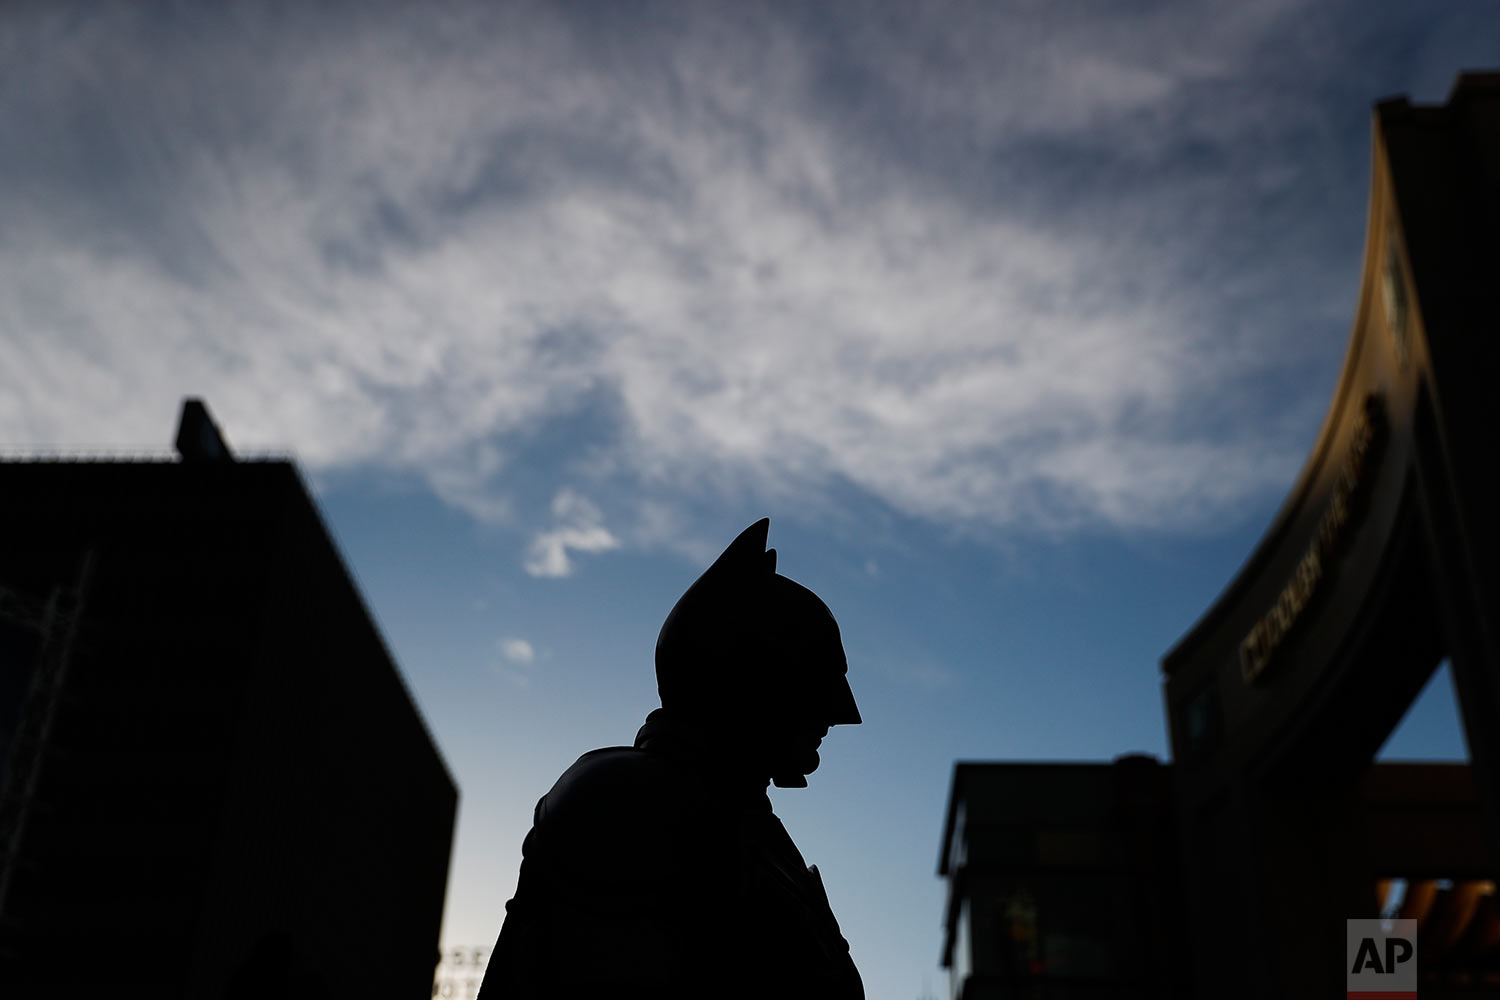 "In this Thursday, March 2, 2017 photo, Batman impersonator Matthias Balke is silhouetted while standing on Hollywood Boulevard near the Dolby Theatre in Los Angeles. Wearing his $3,000 Batman costume, Balke said he doesn't grab tourists or crack a joke to get their attention. Instead, he waits for them to come to him. ""My way of soliciting is the quality of my costume,"" he said. ""People see it, they come to me to ask me for a picture. I'd never walk up to anybody."" (AP Photo/Jae C. Hong)"